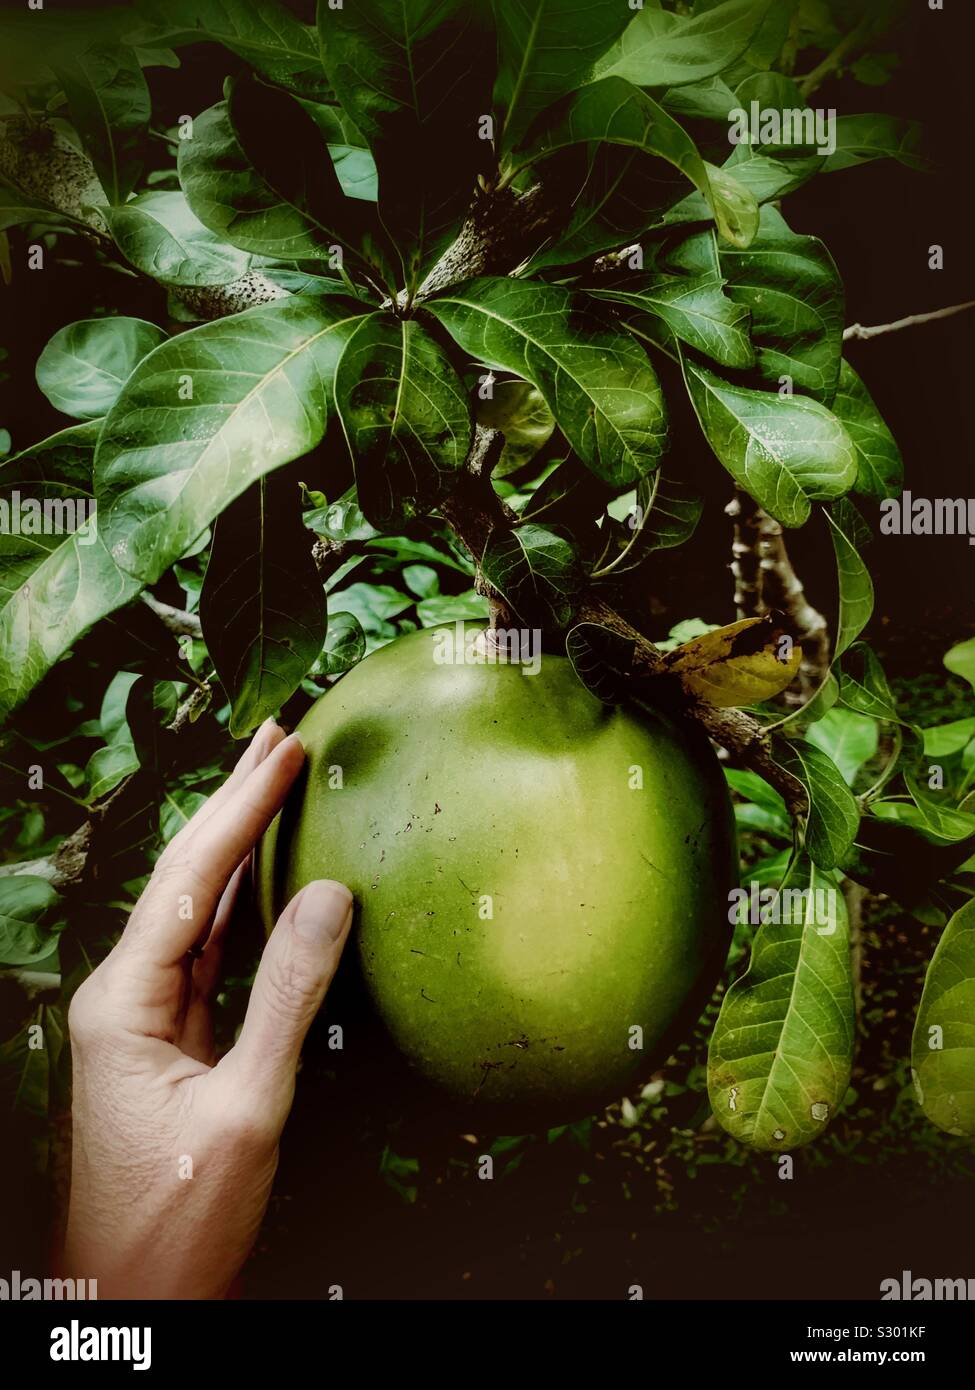 A woman's hand touches the exterior of the fruit growing on a Jícara tree.  It is a sacred tree of the Maya.  The hard shells of the fruit are often used as drinking or serving vessels. Stock Photo